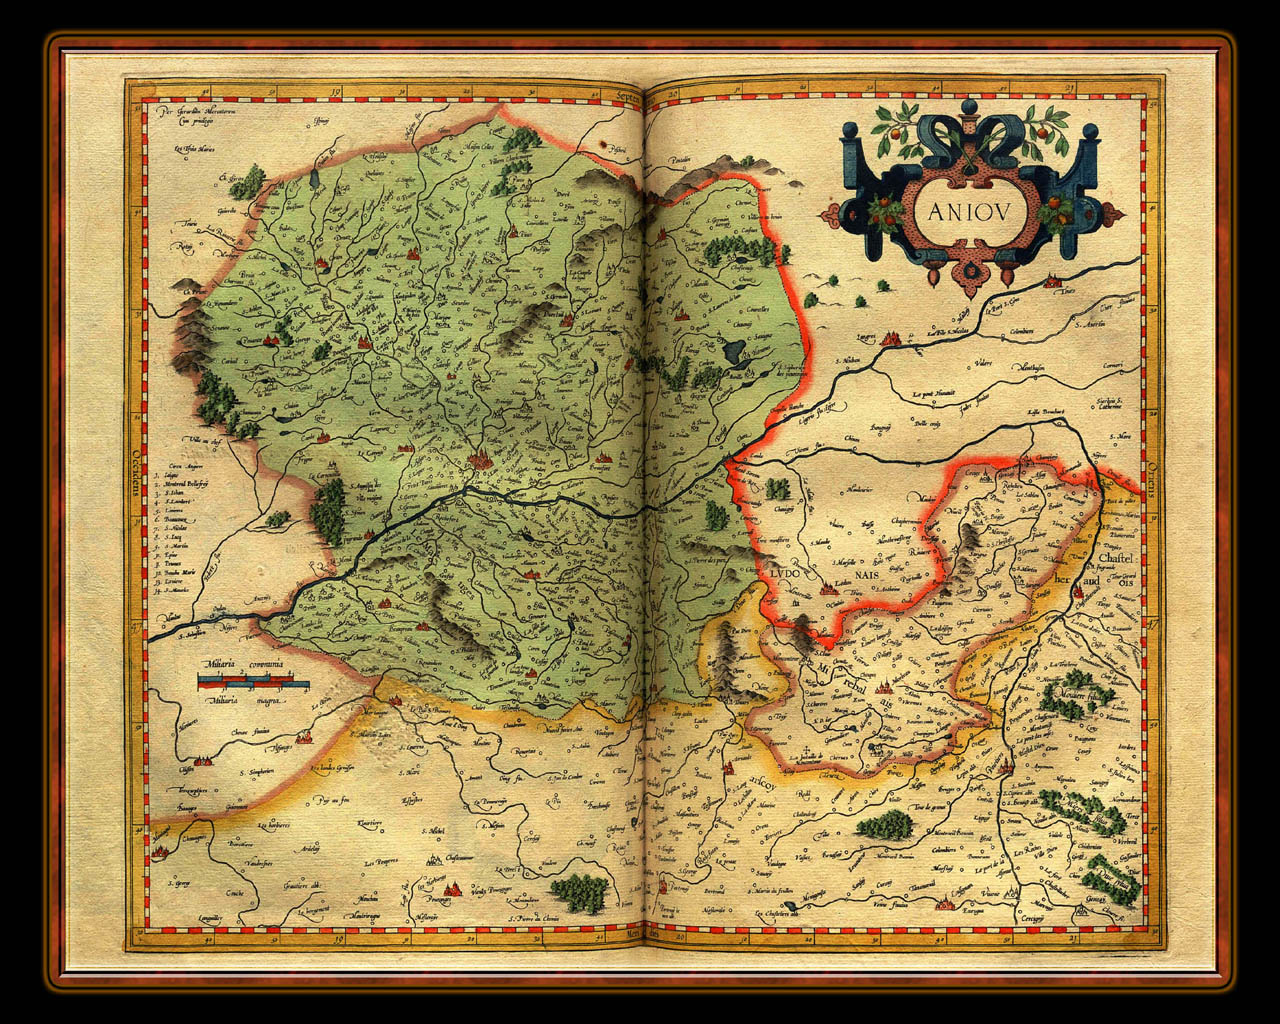 """Gerhard Mercator 1595 World Atlas - Cosmographicae"" - Wallpaper No. 68 of 106. Right click for saving options."